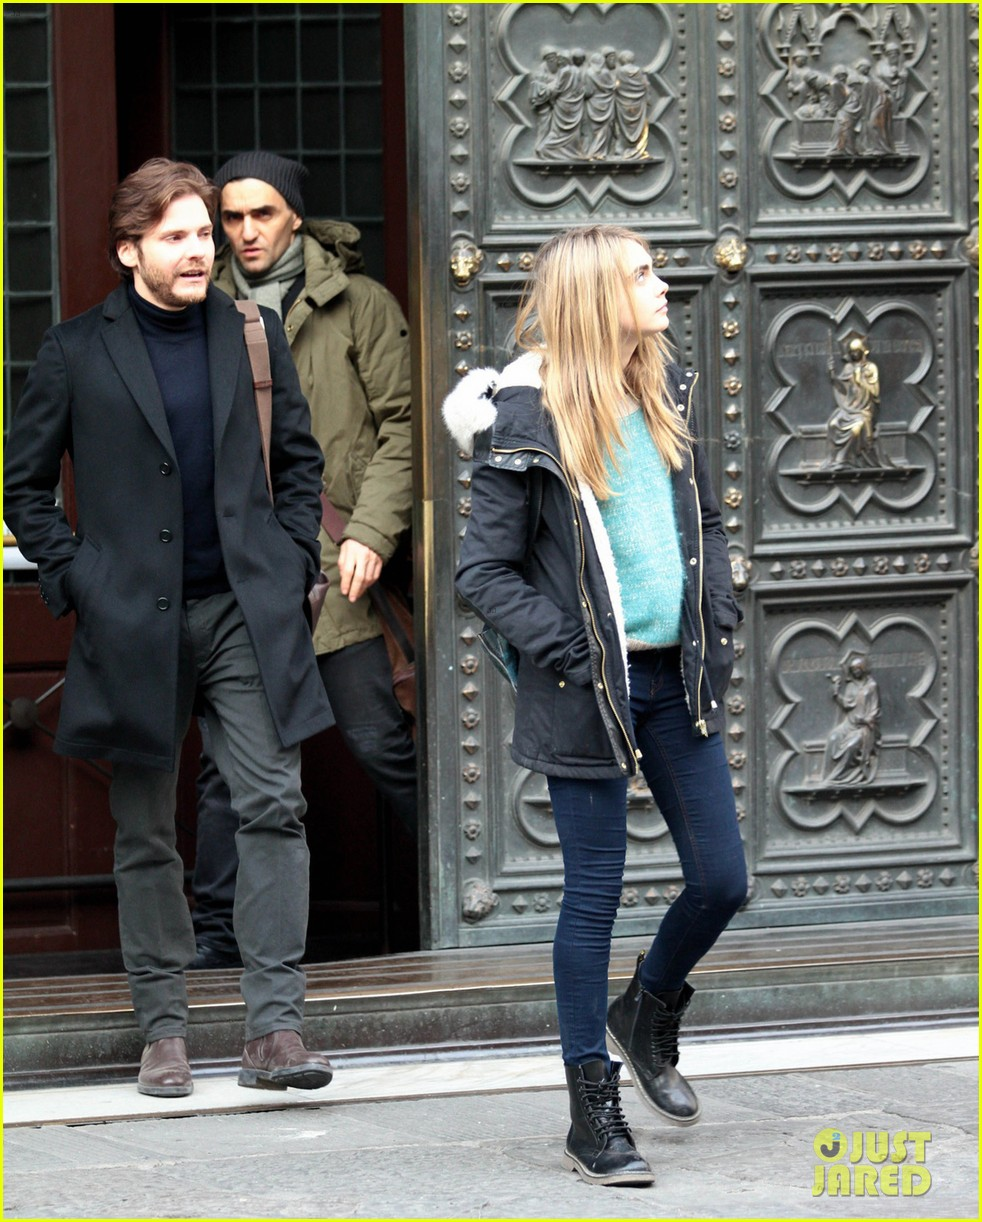 cara delevingne films a movie with daniel bruhl in italy 093014680